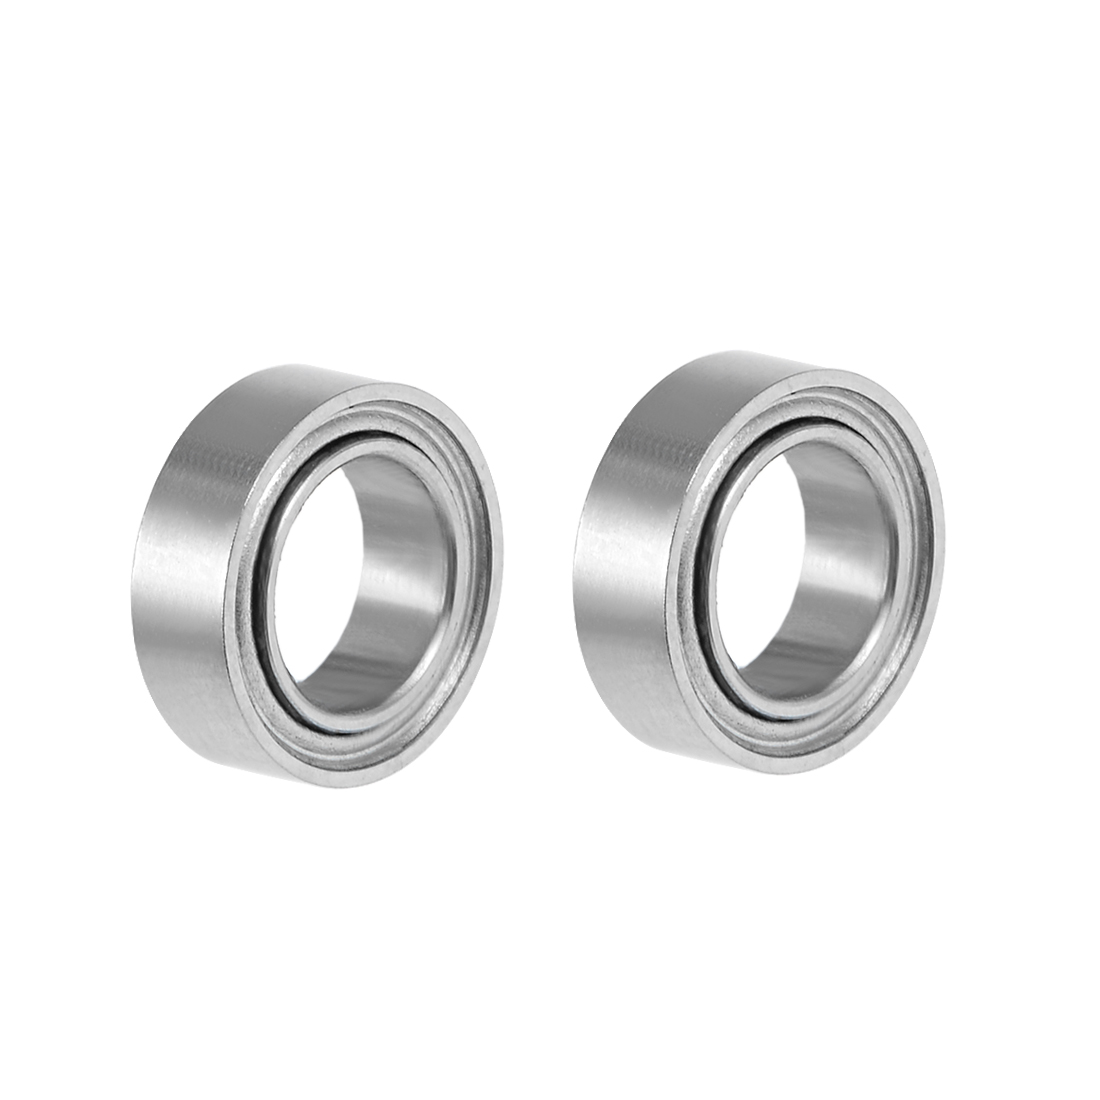 Uxcell MR85ZZ Ball Bearing 5x8x2.5mm Double Shielded ABEC-3 Bearings 2pcs